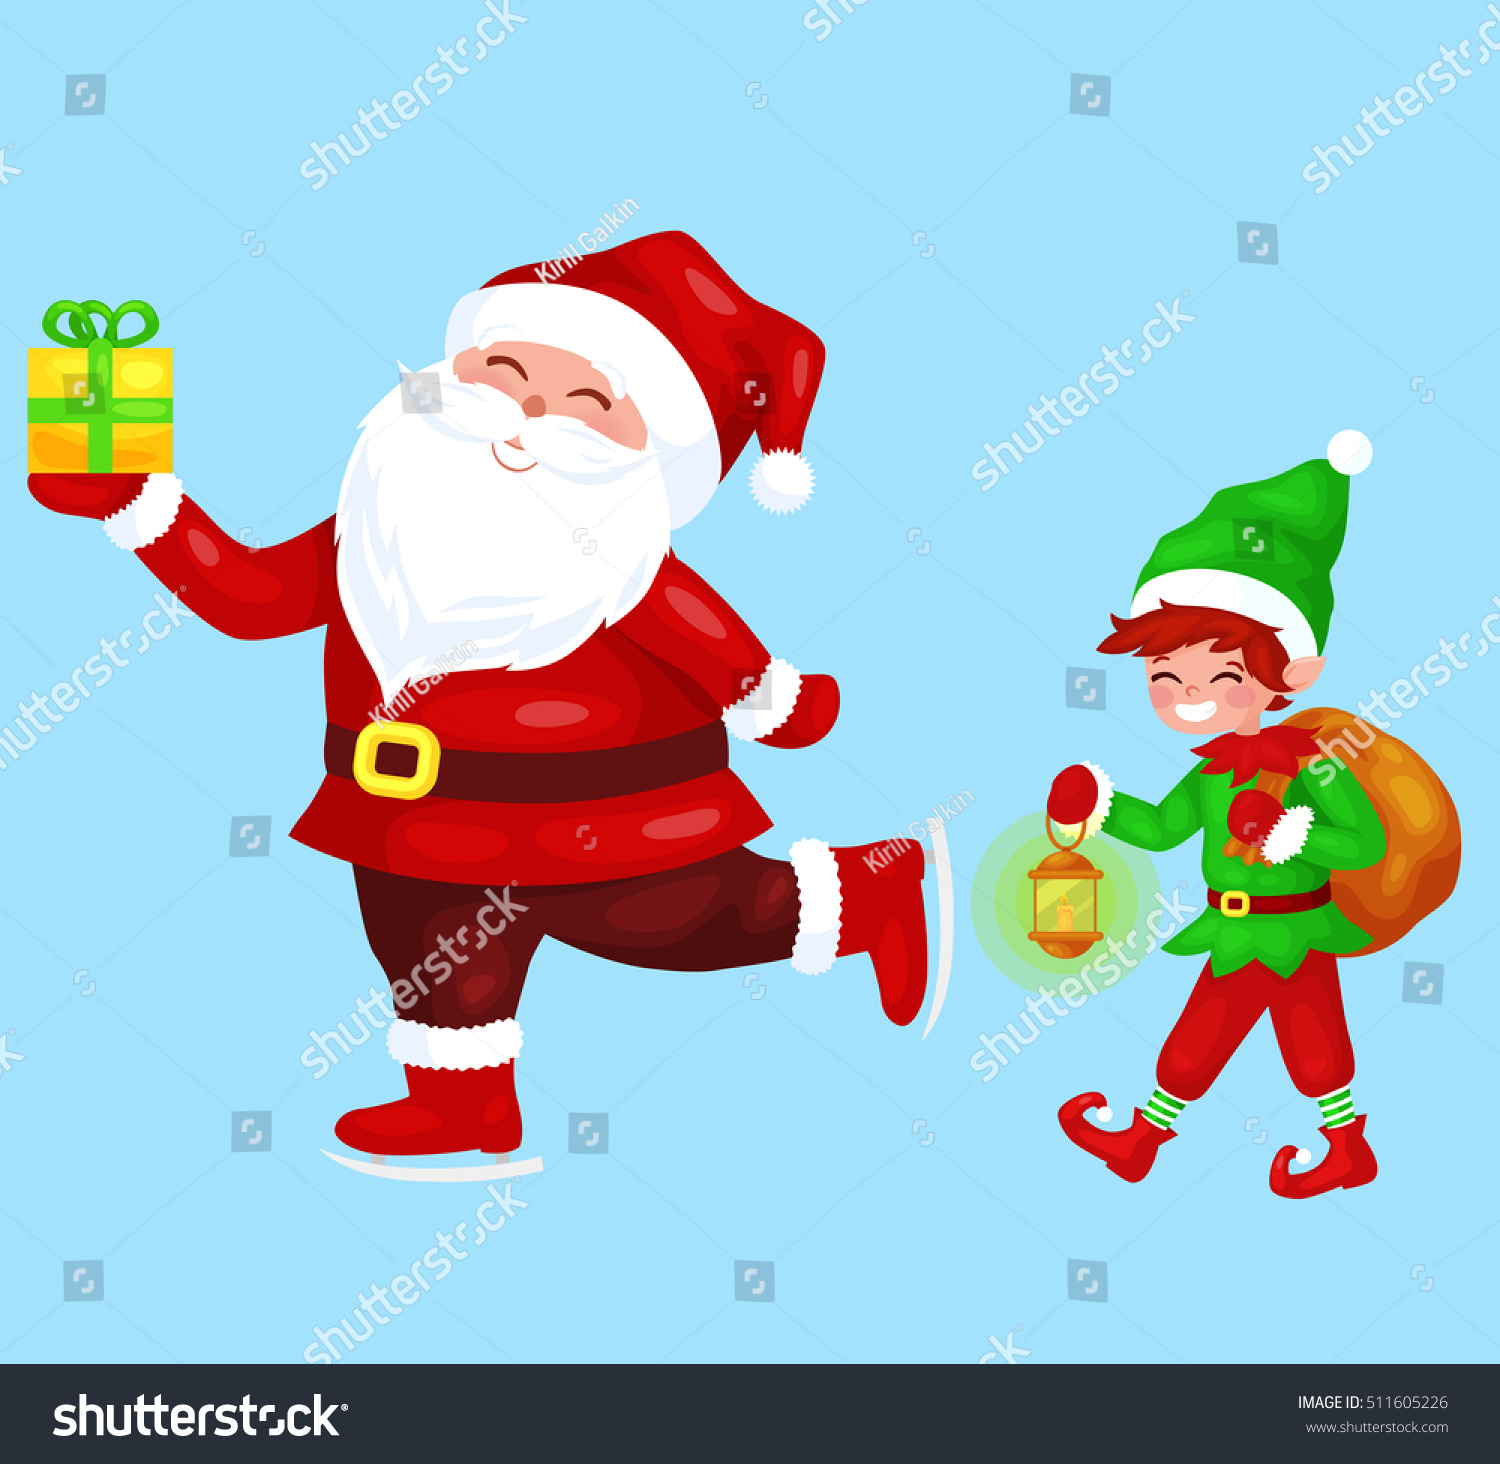 Merry Christmas Funny Images.Merry Christmas Funny Santa Claus Gift Stock Vector Royalty